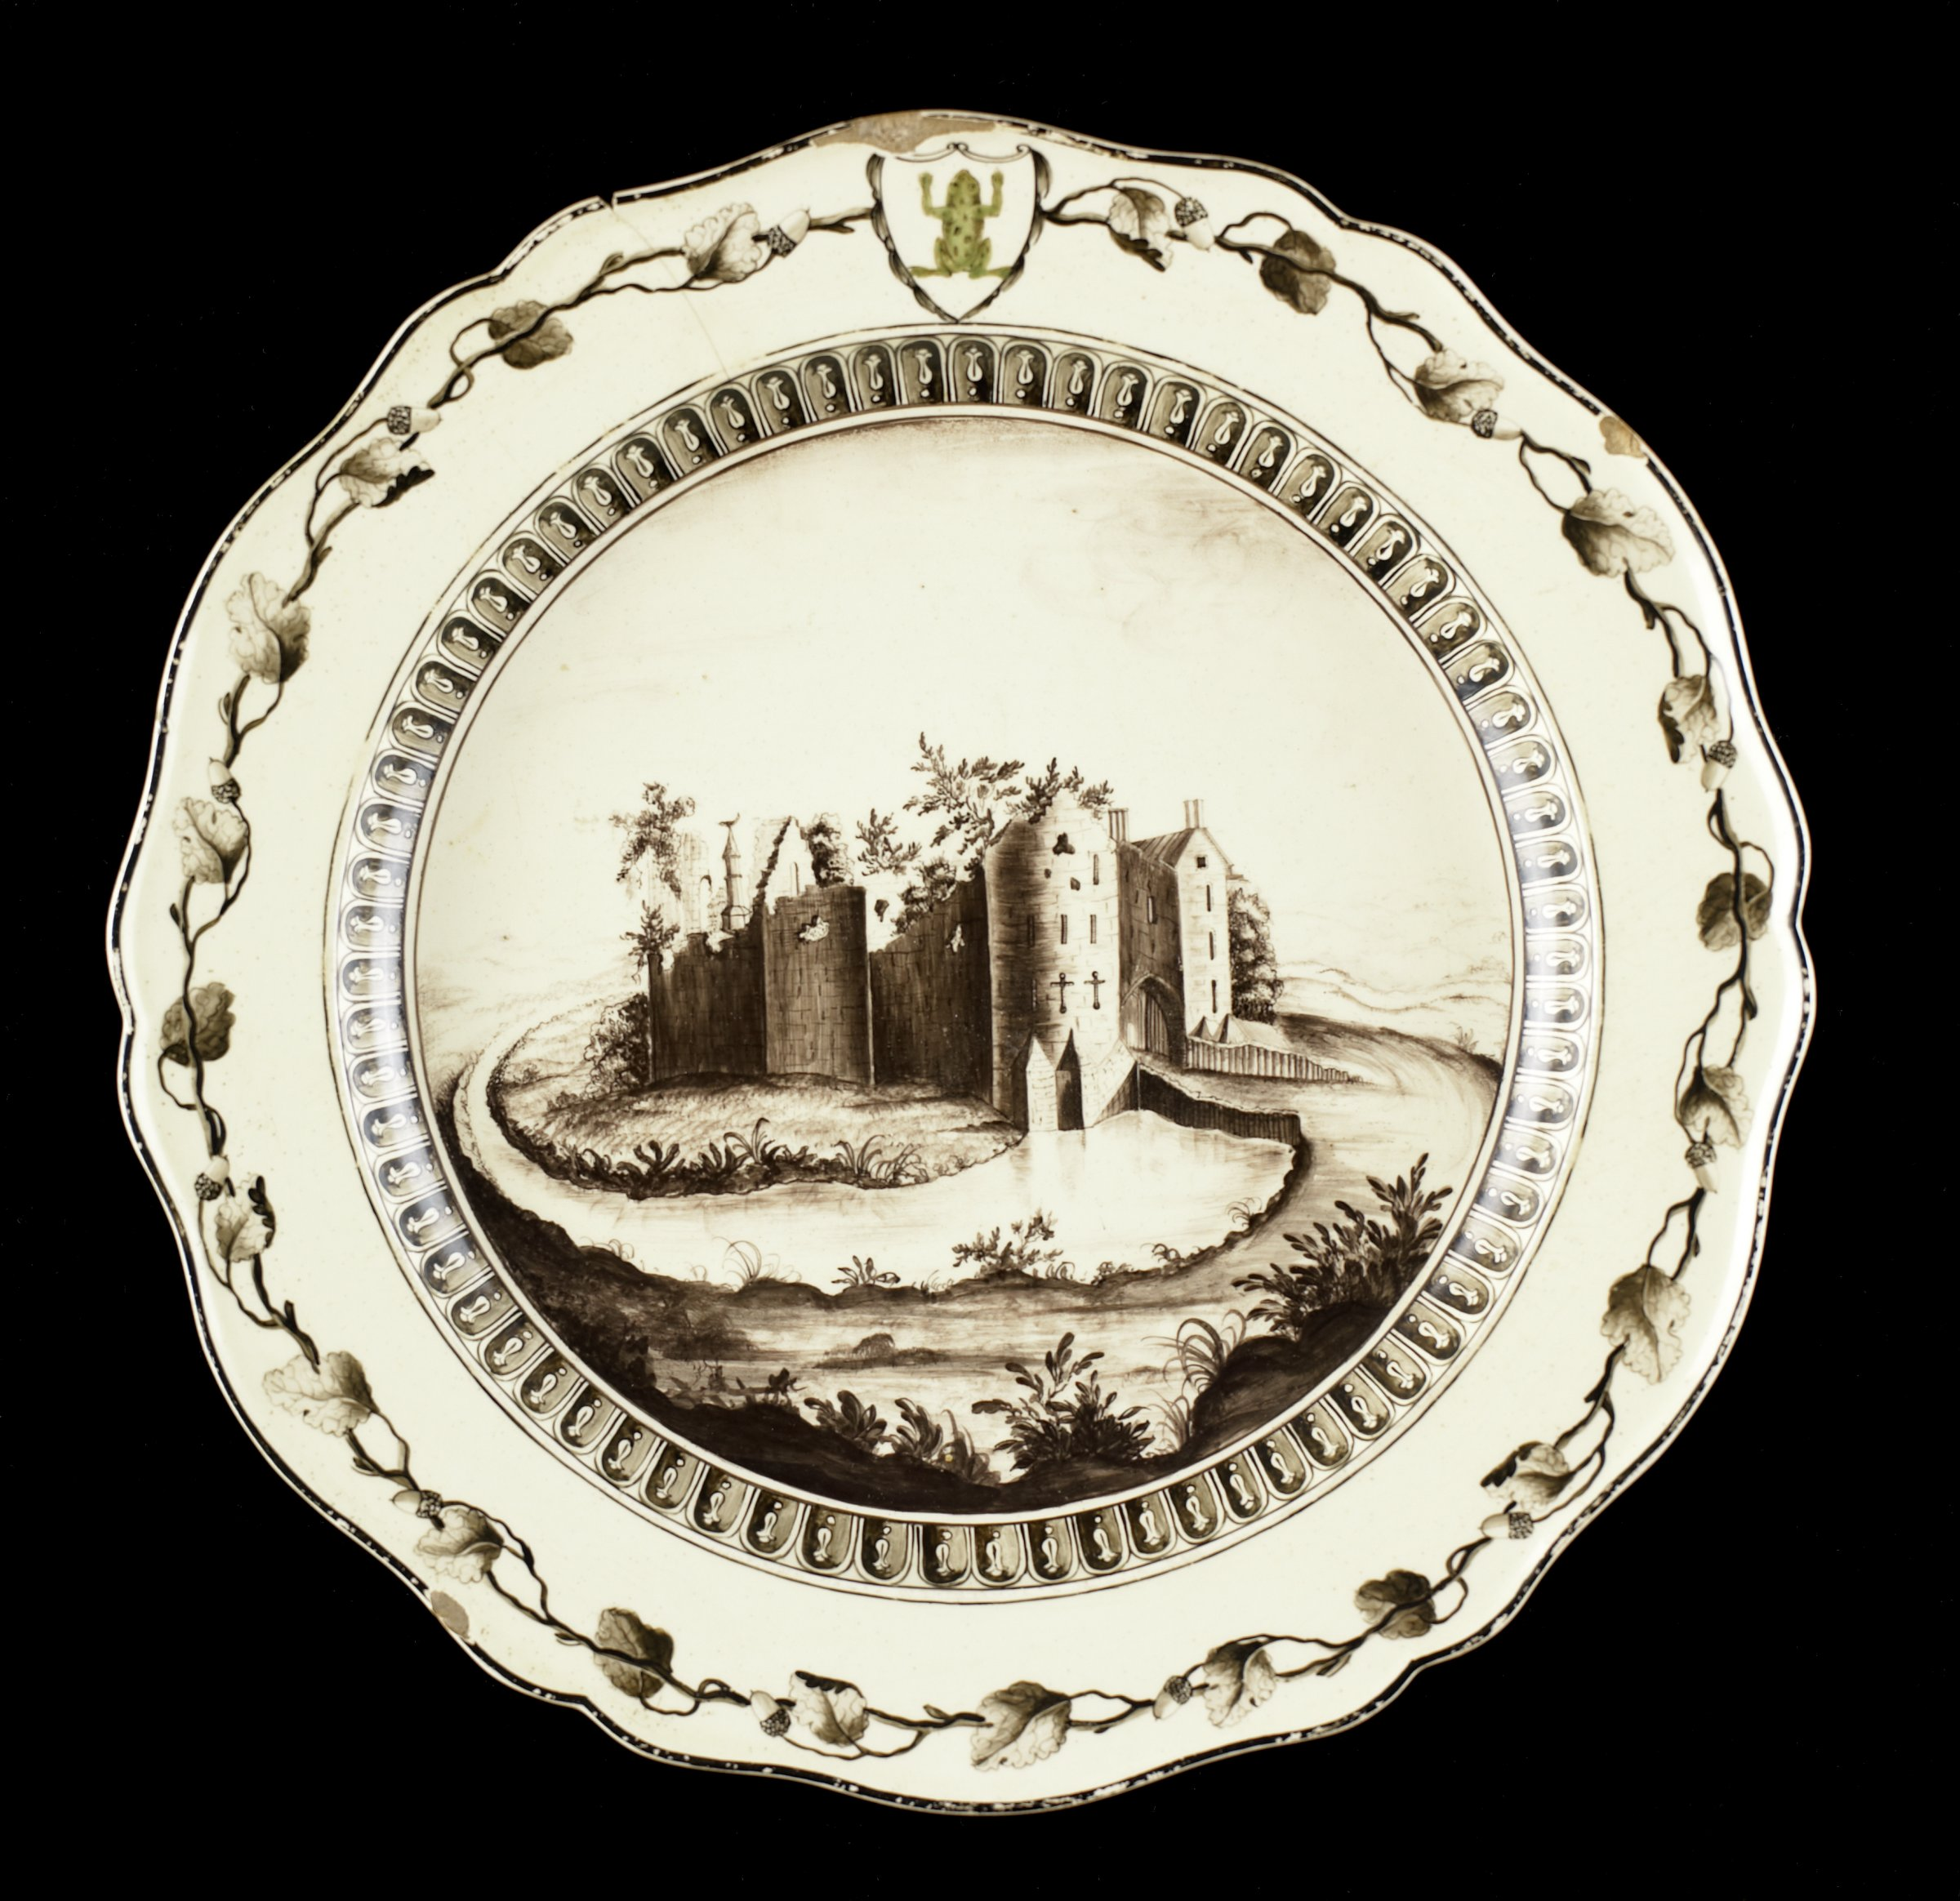 Round creamware dinner plate with petal-shaped rim decorated in monochrome sepia enamel with a hand painted scene of St. Briavels Castle in Gloucestershire, England, from the east, within a border of false gadroons, the rim of the plate has a garland of oak leaves and acorns around its perimeter with a central shield-shaped cartouche within which a stylized, green-enameled frog, with a small band of sepia enamel on the edge of the rim.